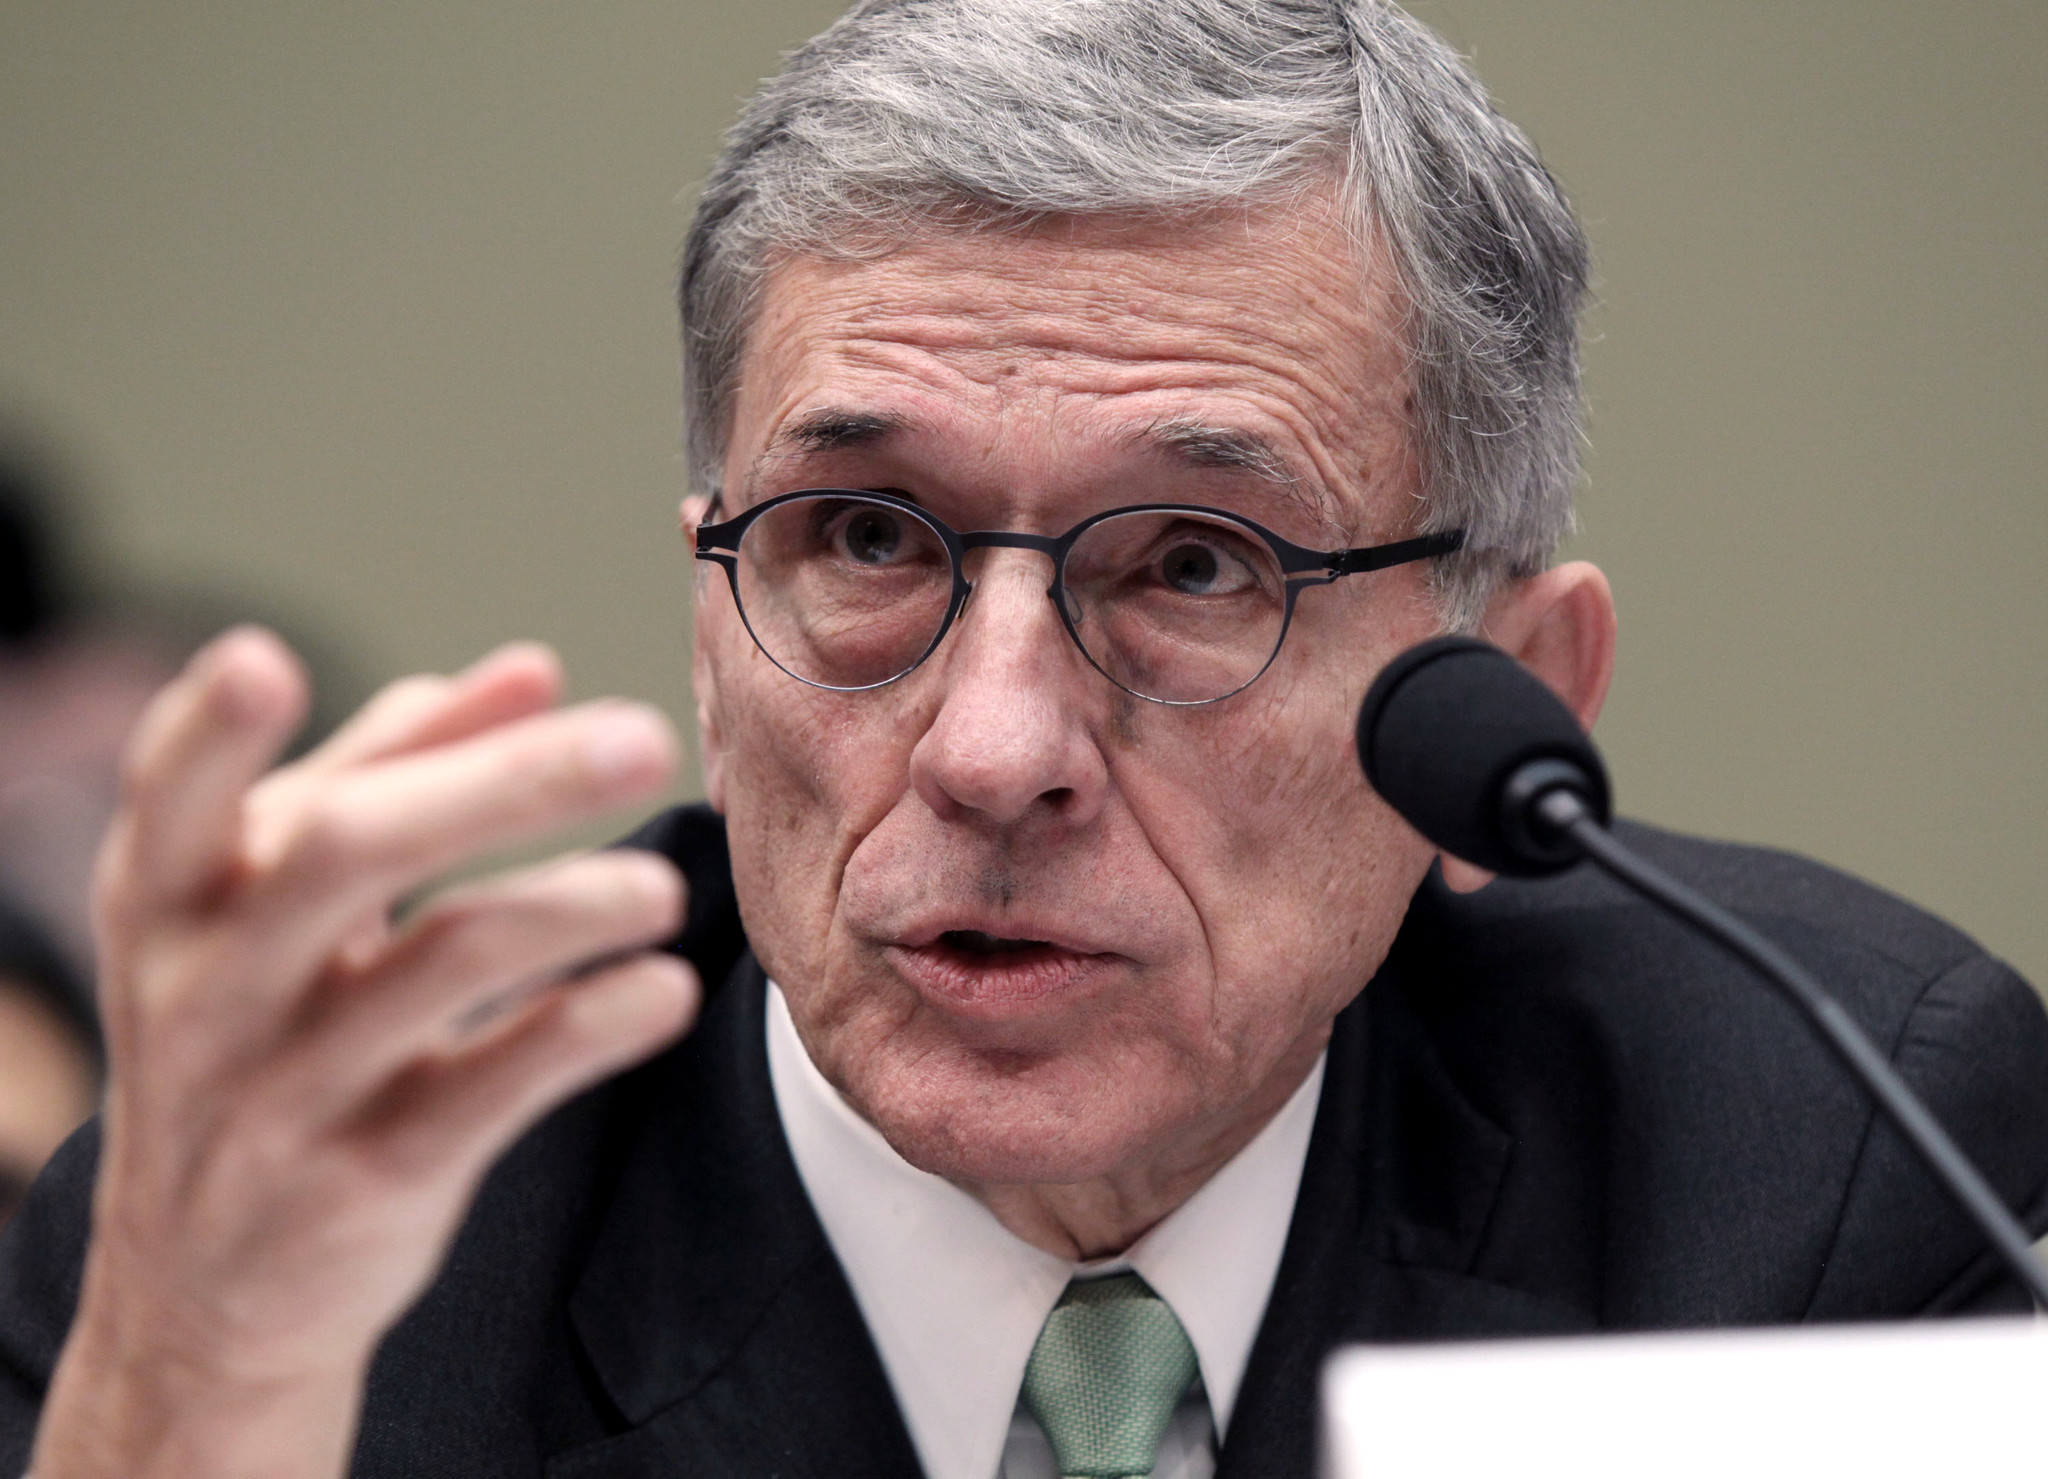 FCC delays action on proposal to bypass set-top boxes - LA Times